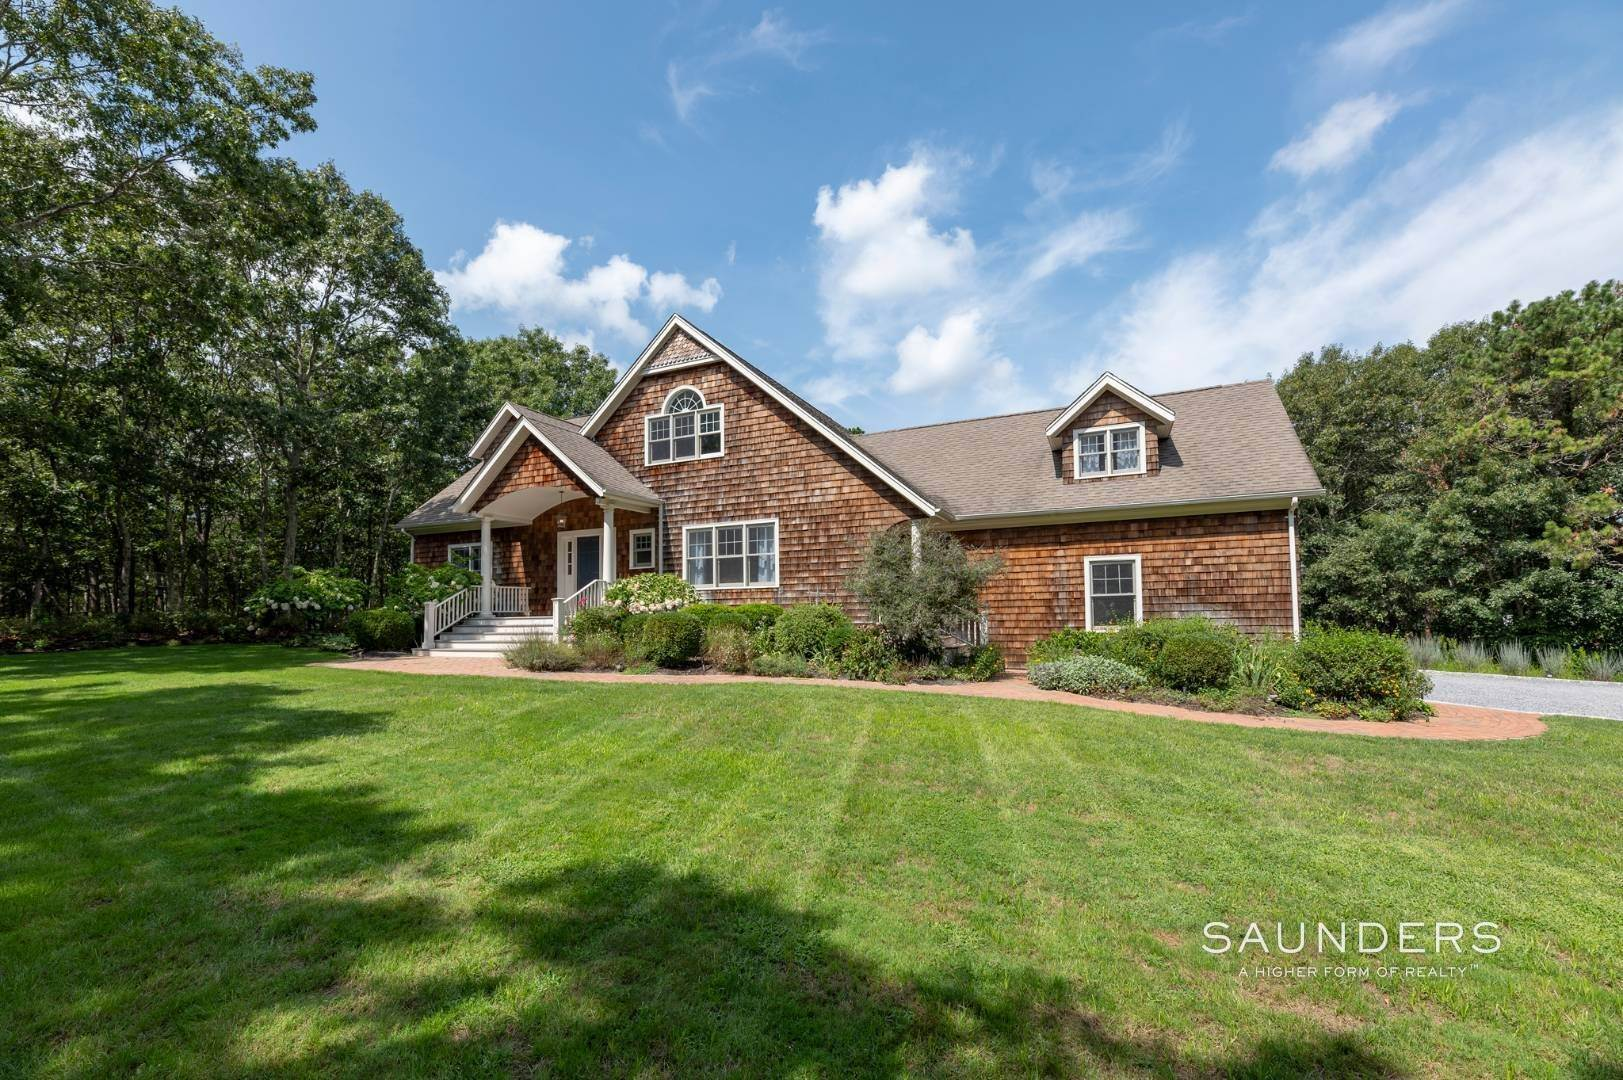 Single Family Homes at Picture Perfect, On Reserve, In Sagaponack North! 15 Long Pond Trail, Sagaponack, Southampton Town, NY 11932